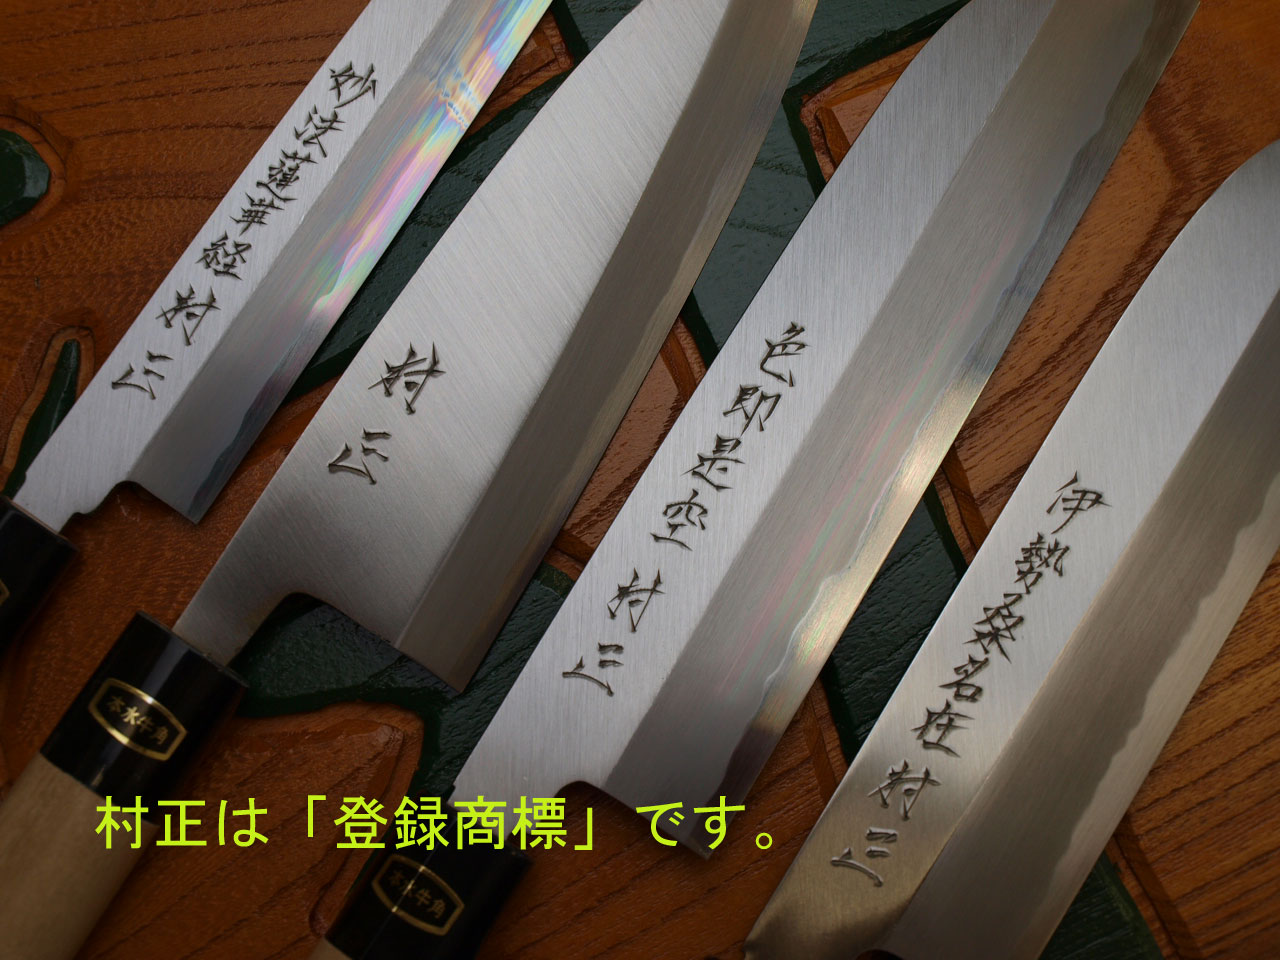 Japanese knife Willow blade 300 mm inscription: blank 2 Willow blade knives, note; photos and inscriptions is different.